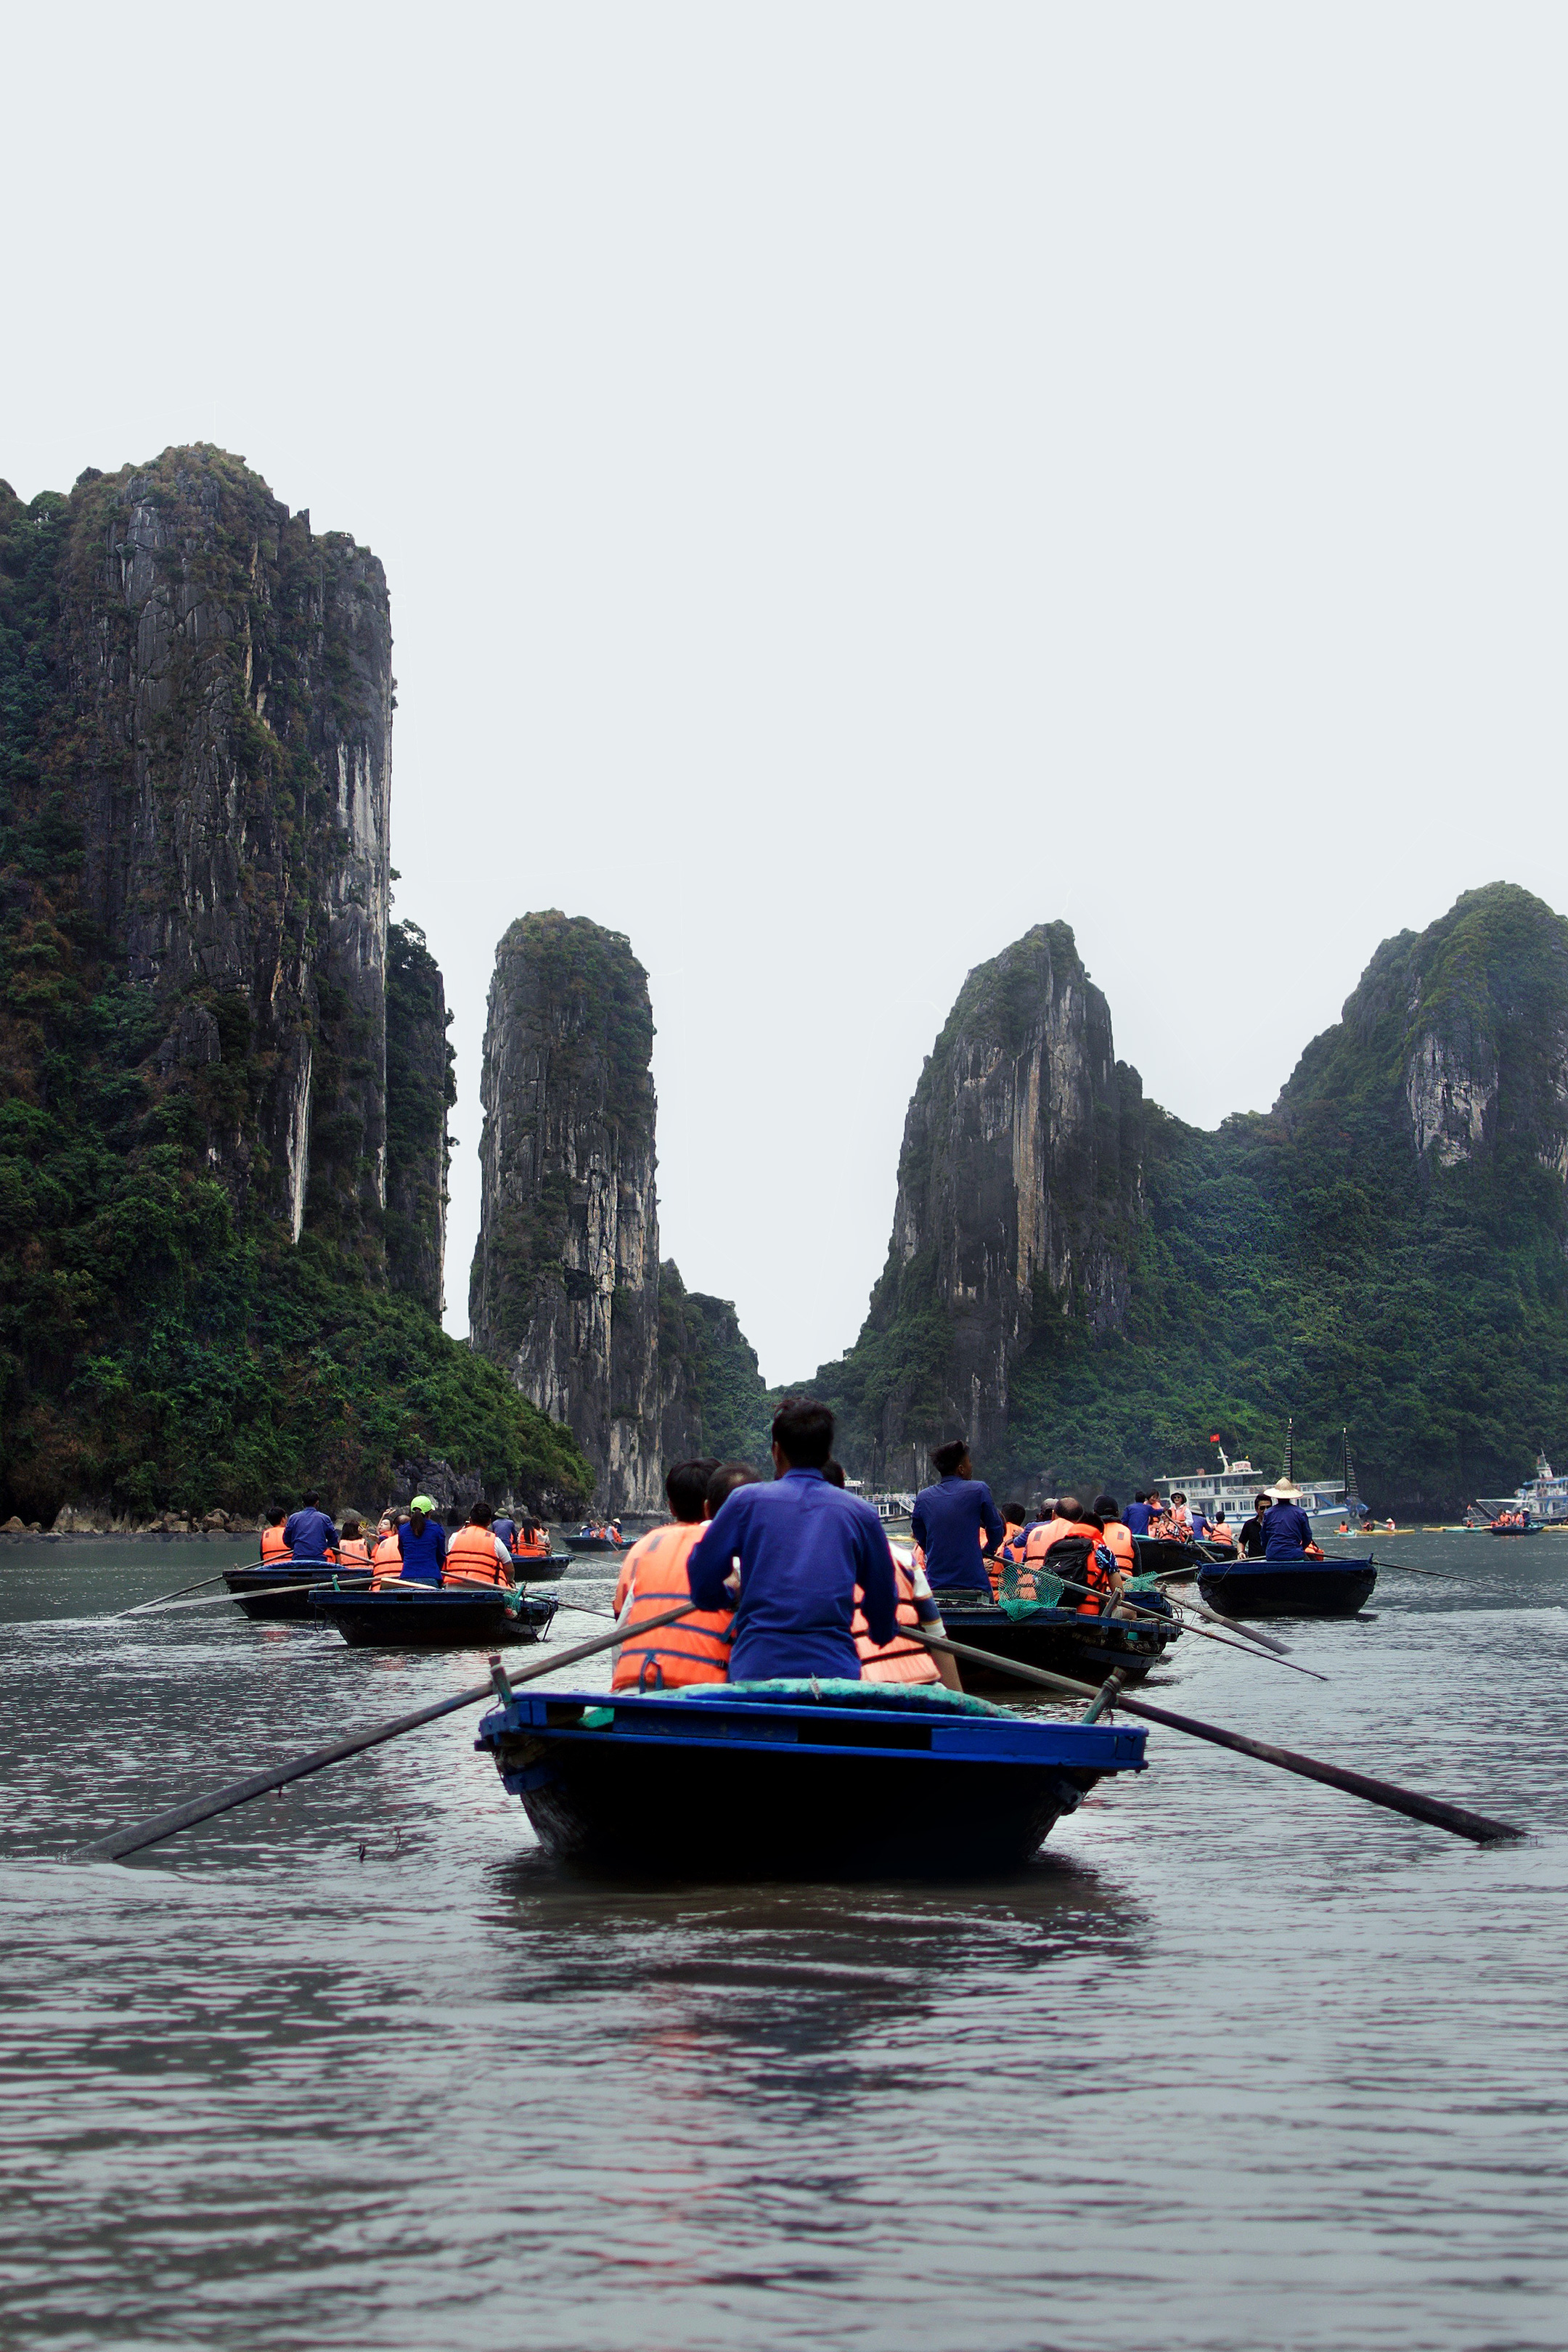 KAYAKING TO THE GROTTOES One of our Ha Long Bay tour activities included going on bamboo boats and riding through the natural grottoes in the limestone islets.! Ha Long Bay is truly otherworldly.